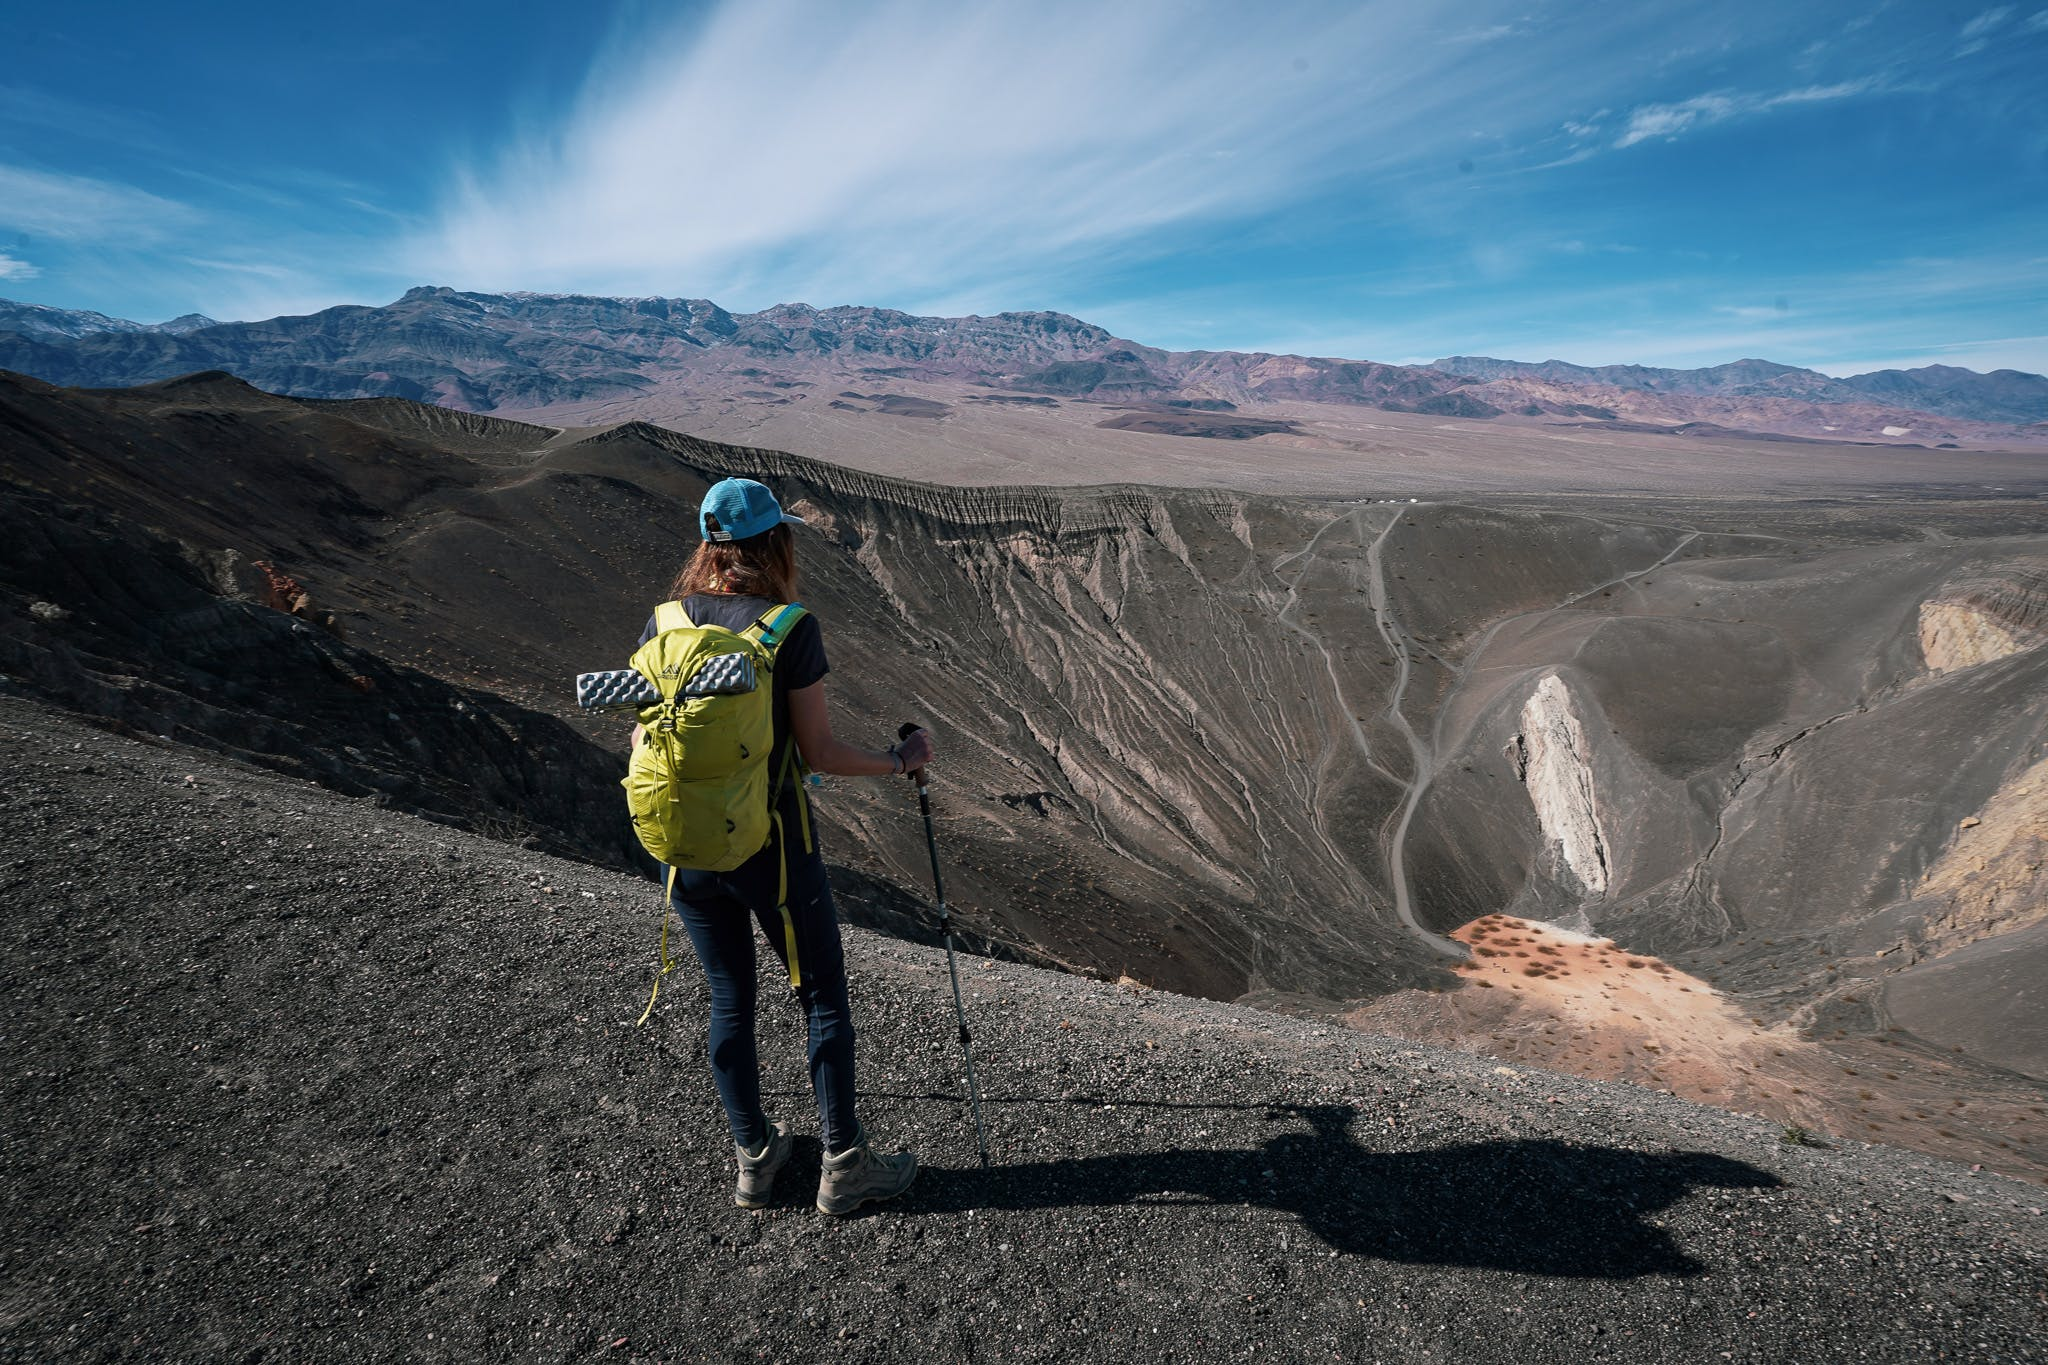 Woman hiking around Ubehebe Crater in Death Valley National Park